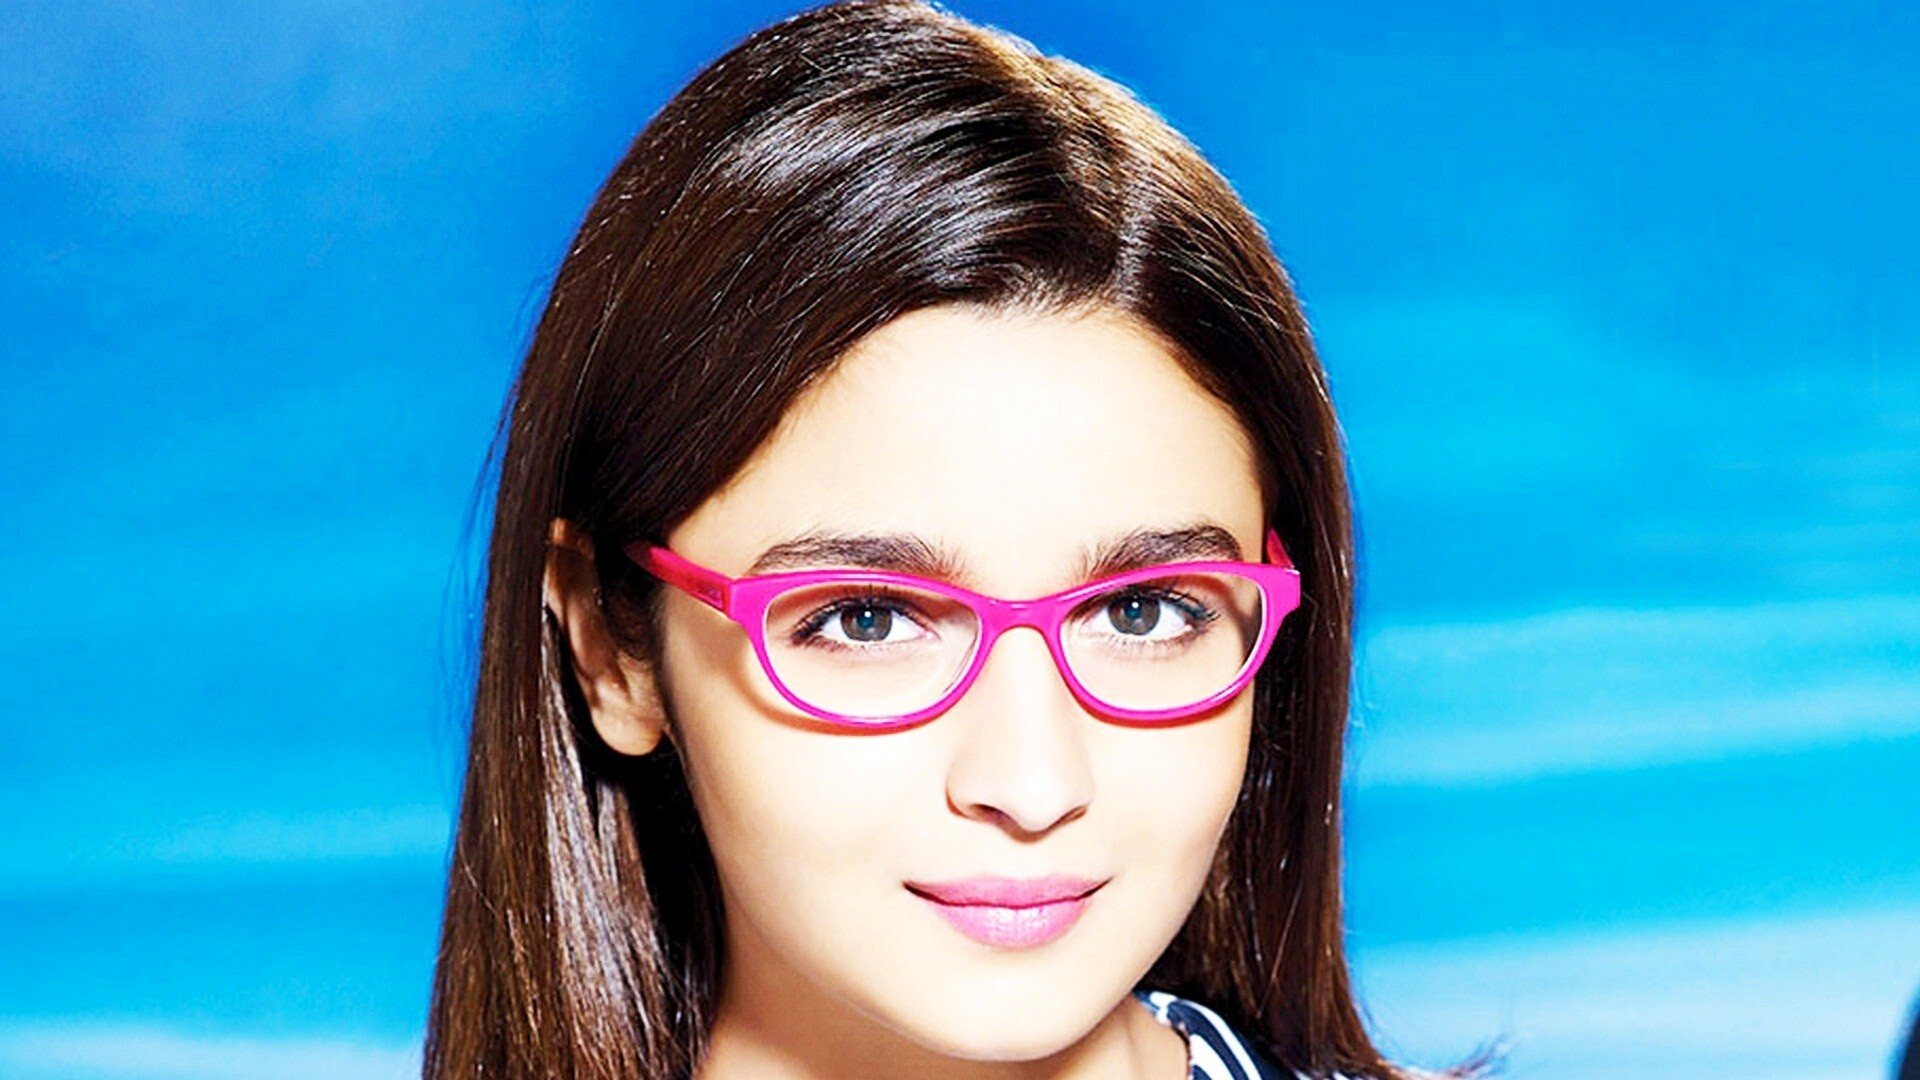 latest photo of alia bhatt in goggles hd photo | hd wallpapers